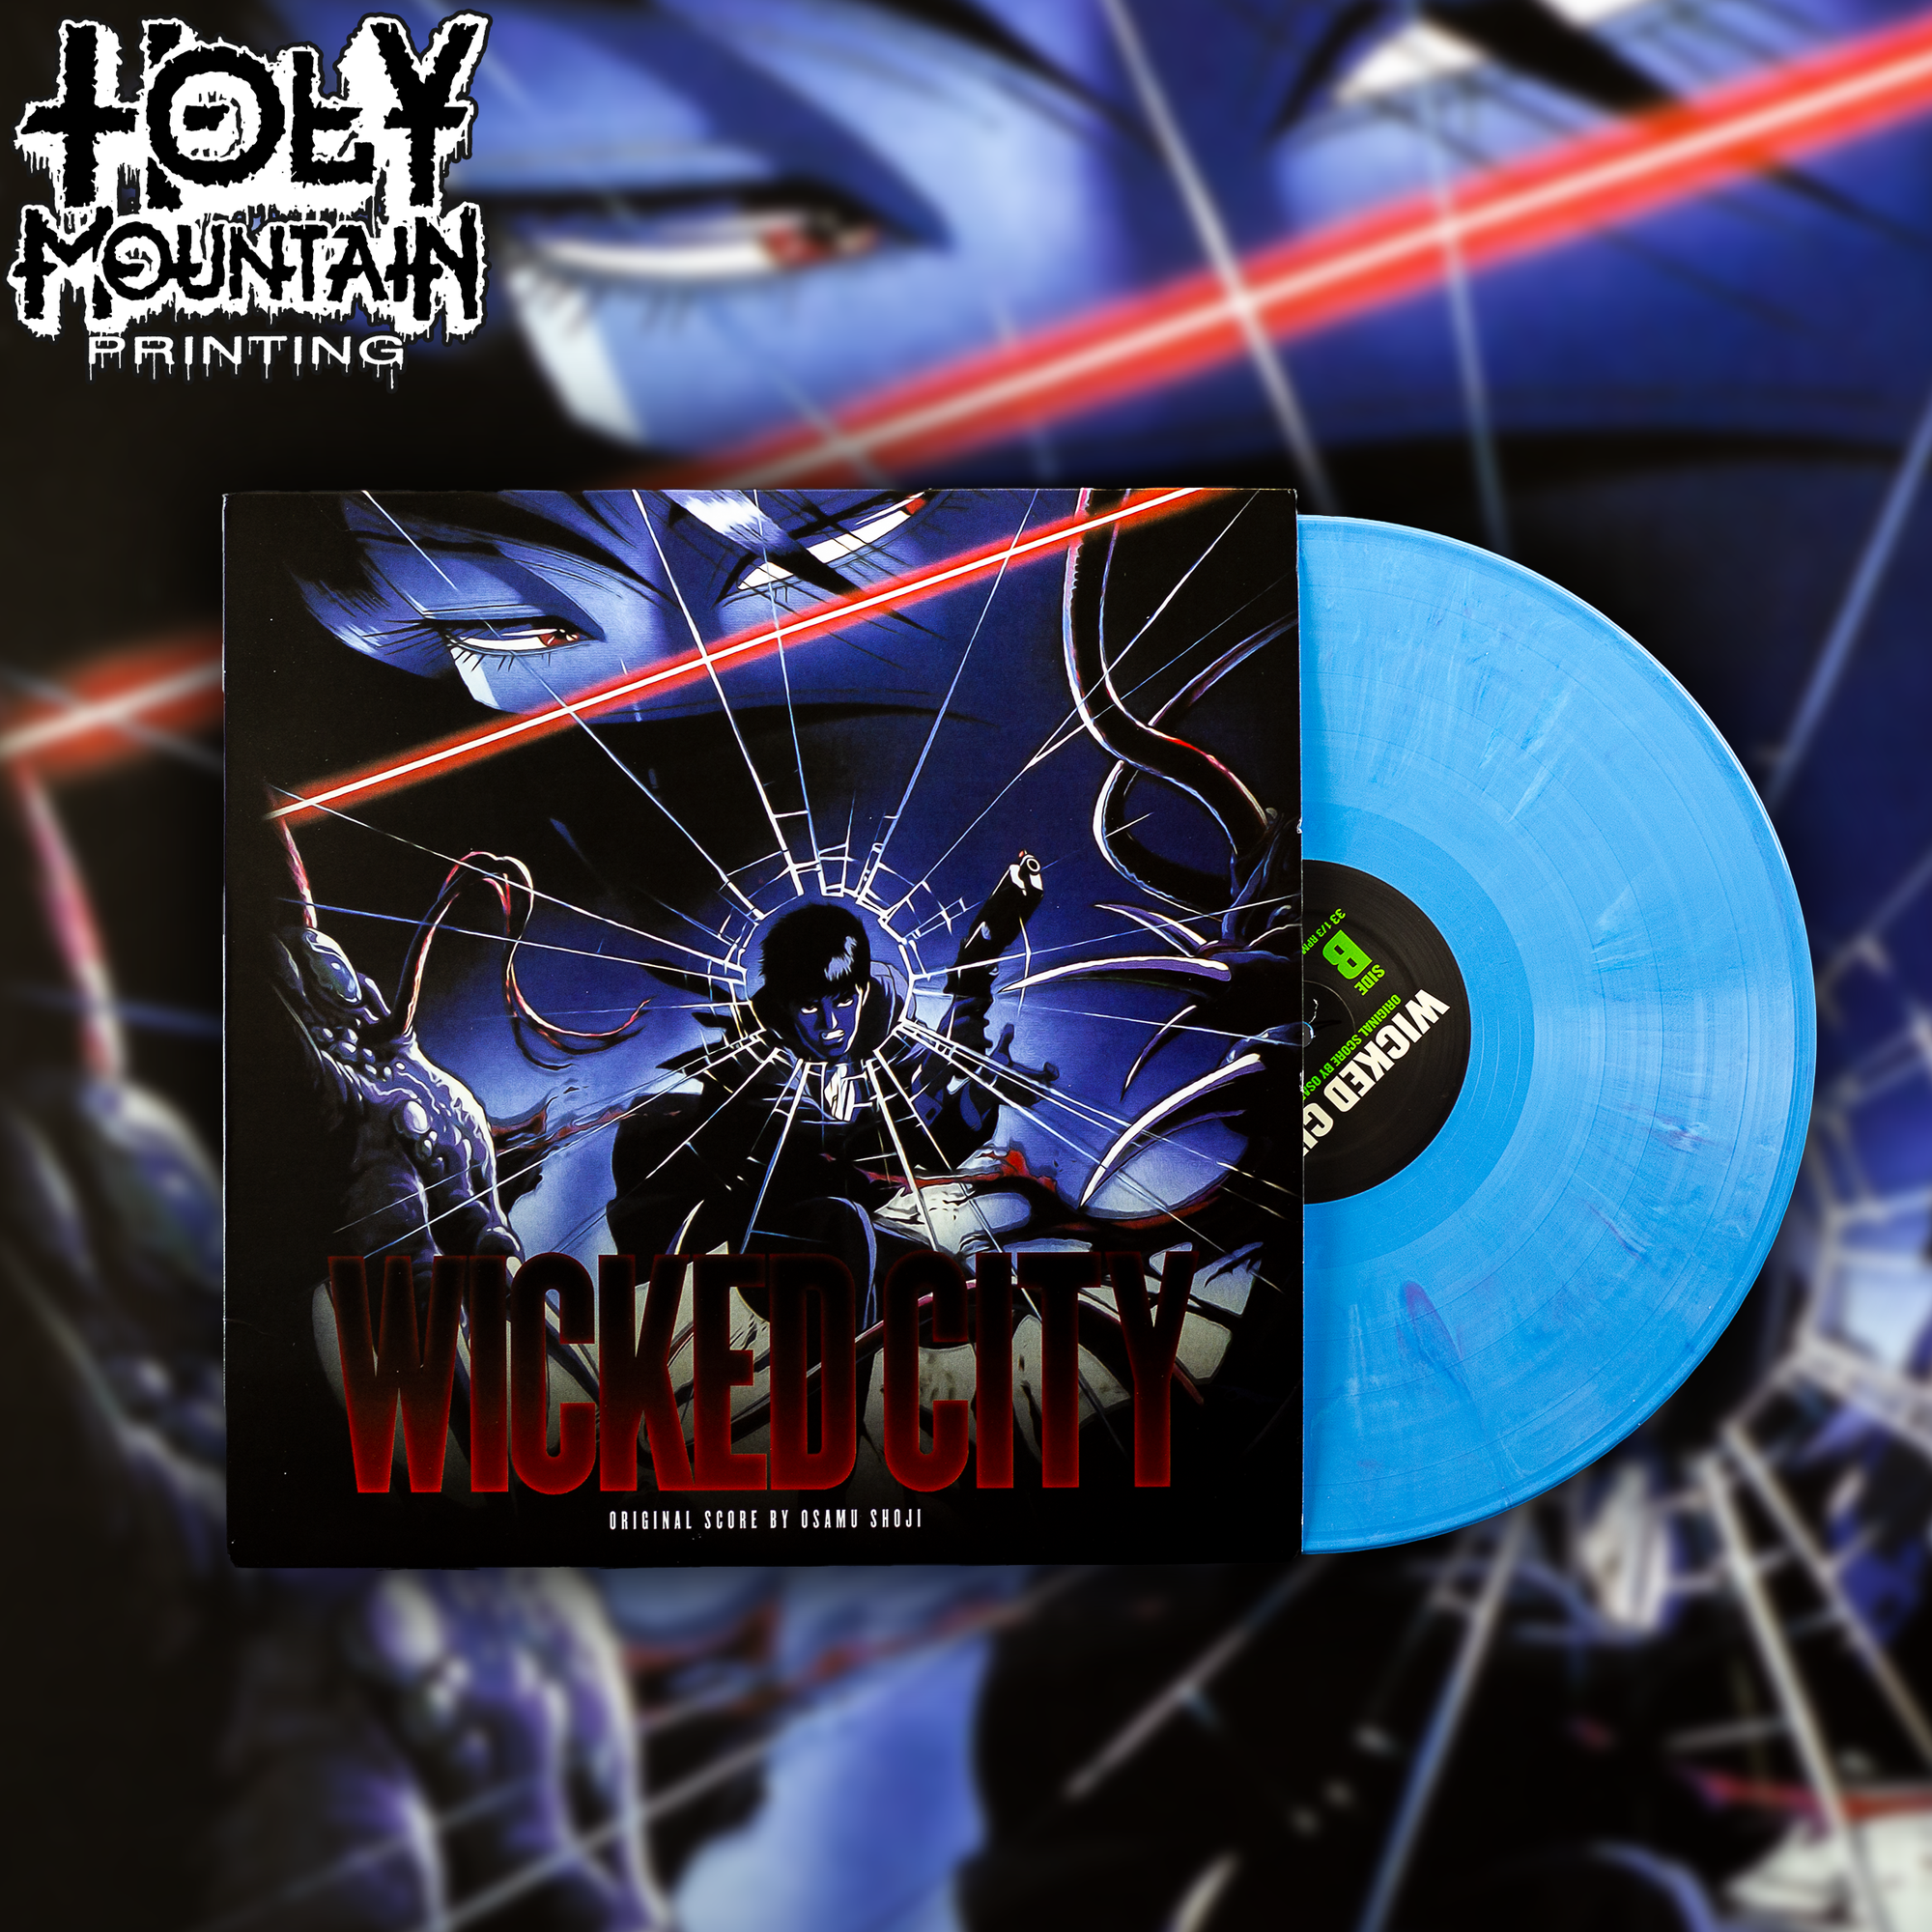 """WICKED CITY"" LIMITED EDITION LP VINYL RECORD"